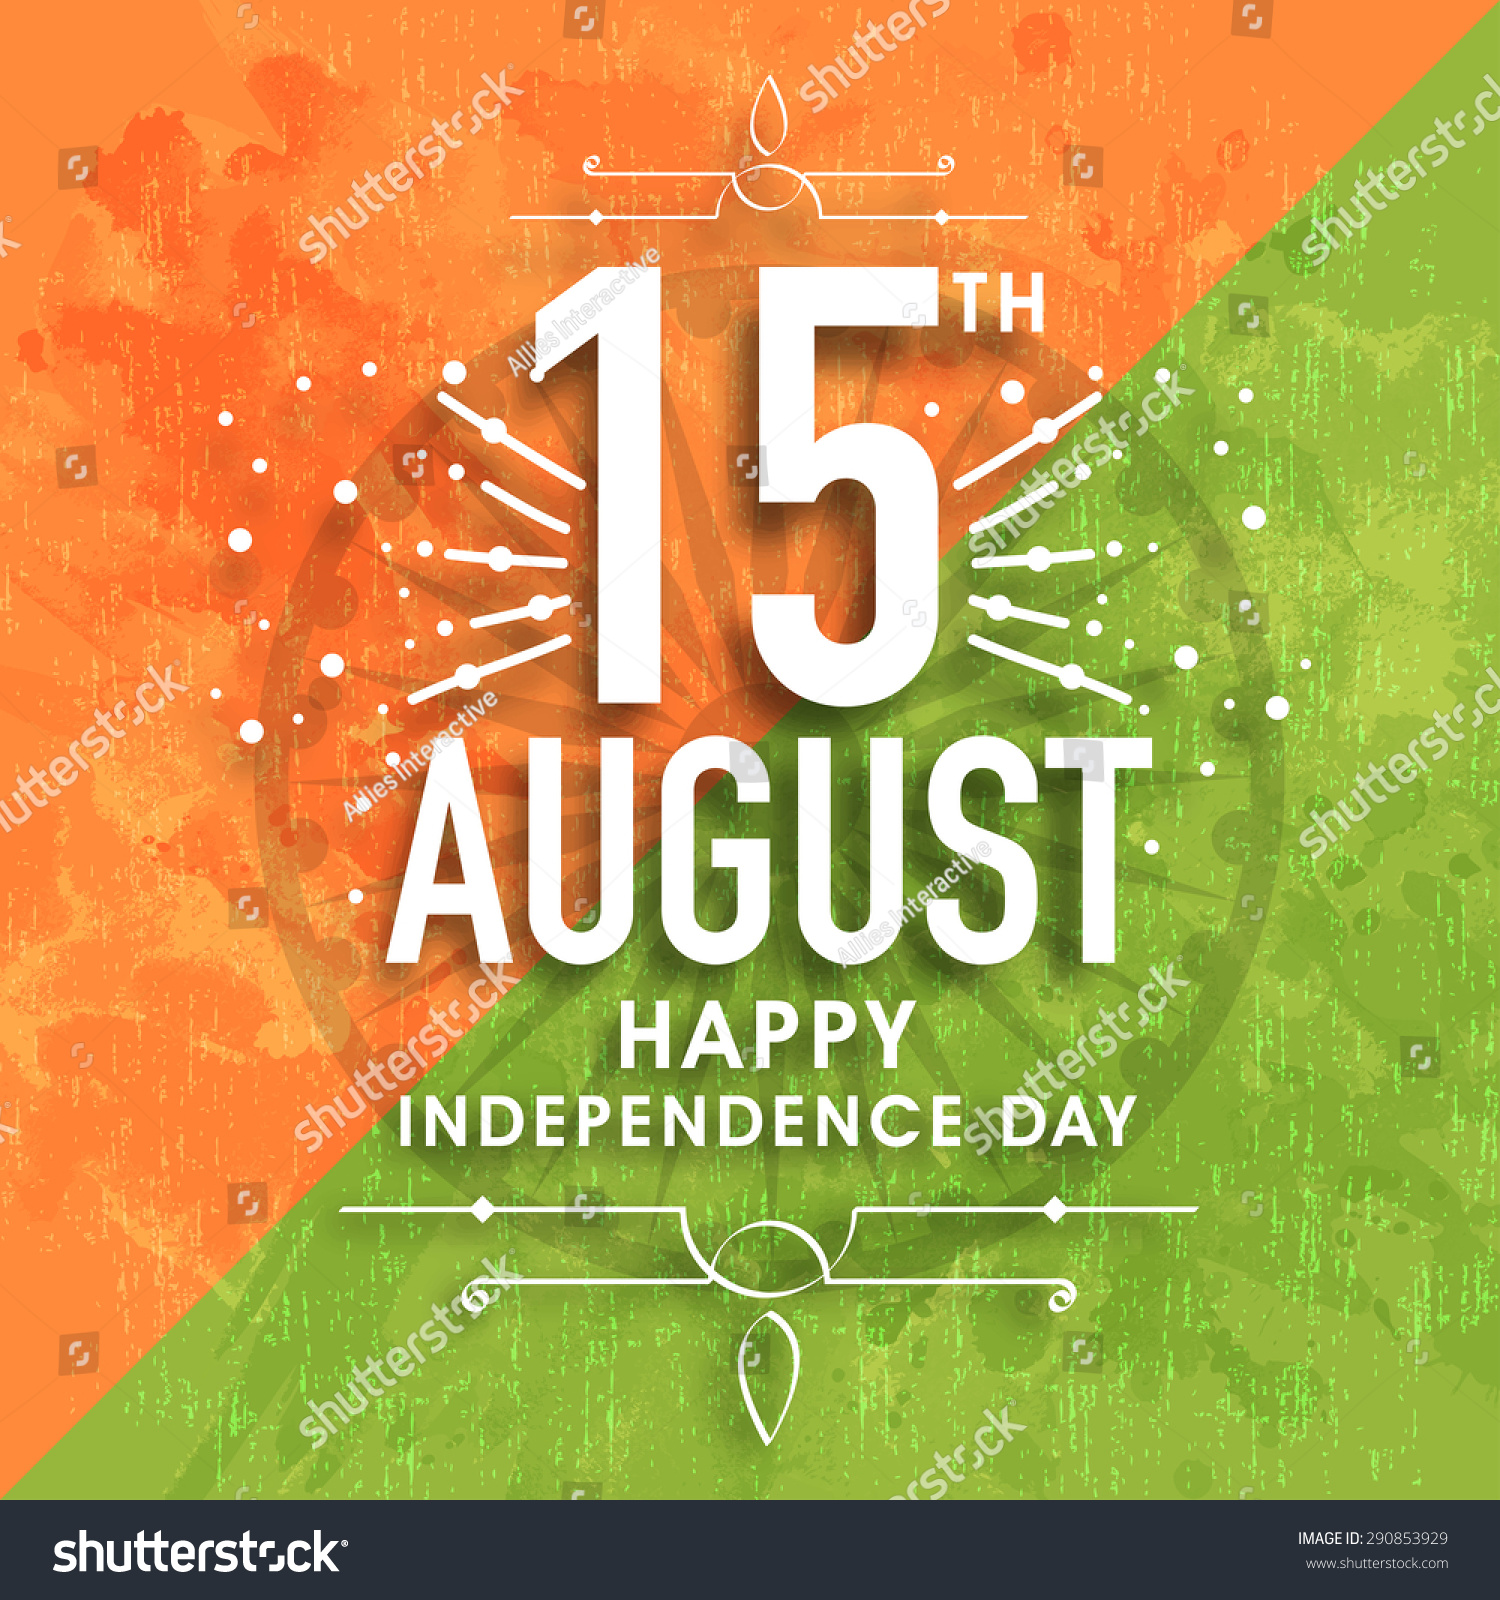 Colors website ashoka - Greeting Card Design With Stylish Text 15th August On Ashoka Wheel And Grungy National Flag Colors